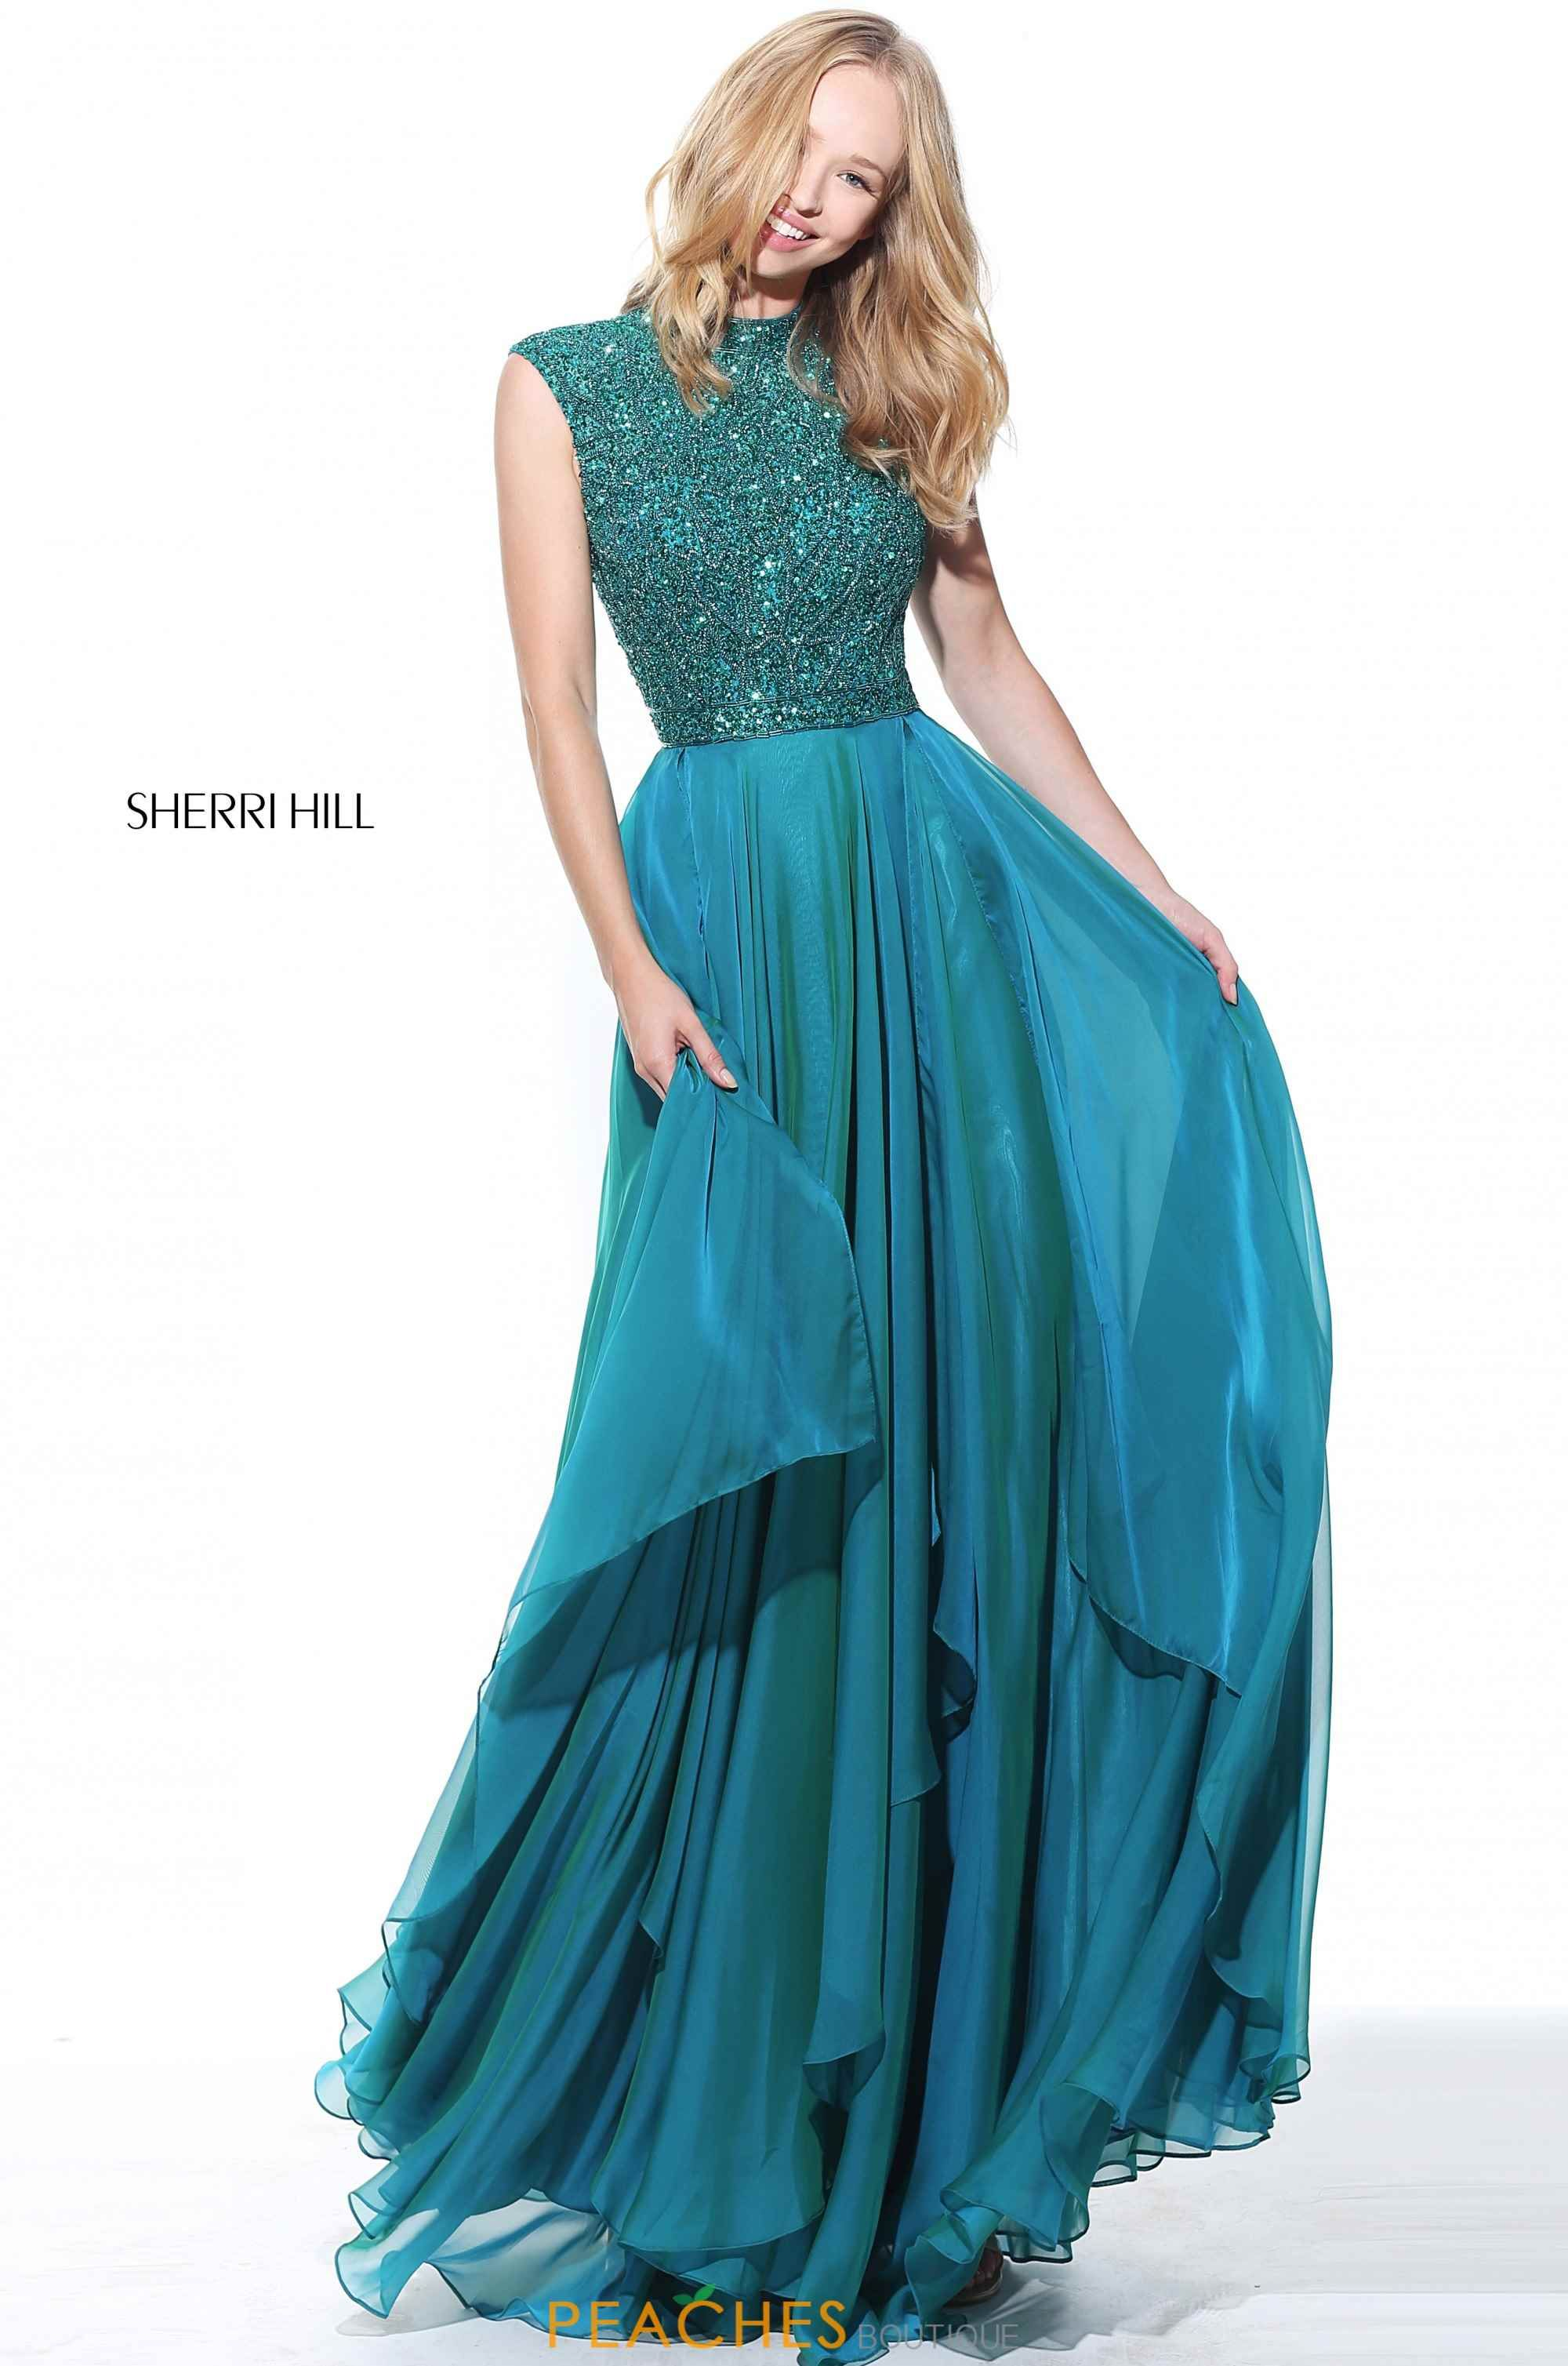 Famous Prom Dresses Dallas Fort Worth Photos - Wedding Plan Ideas ...